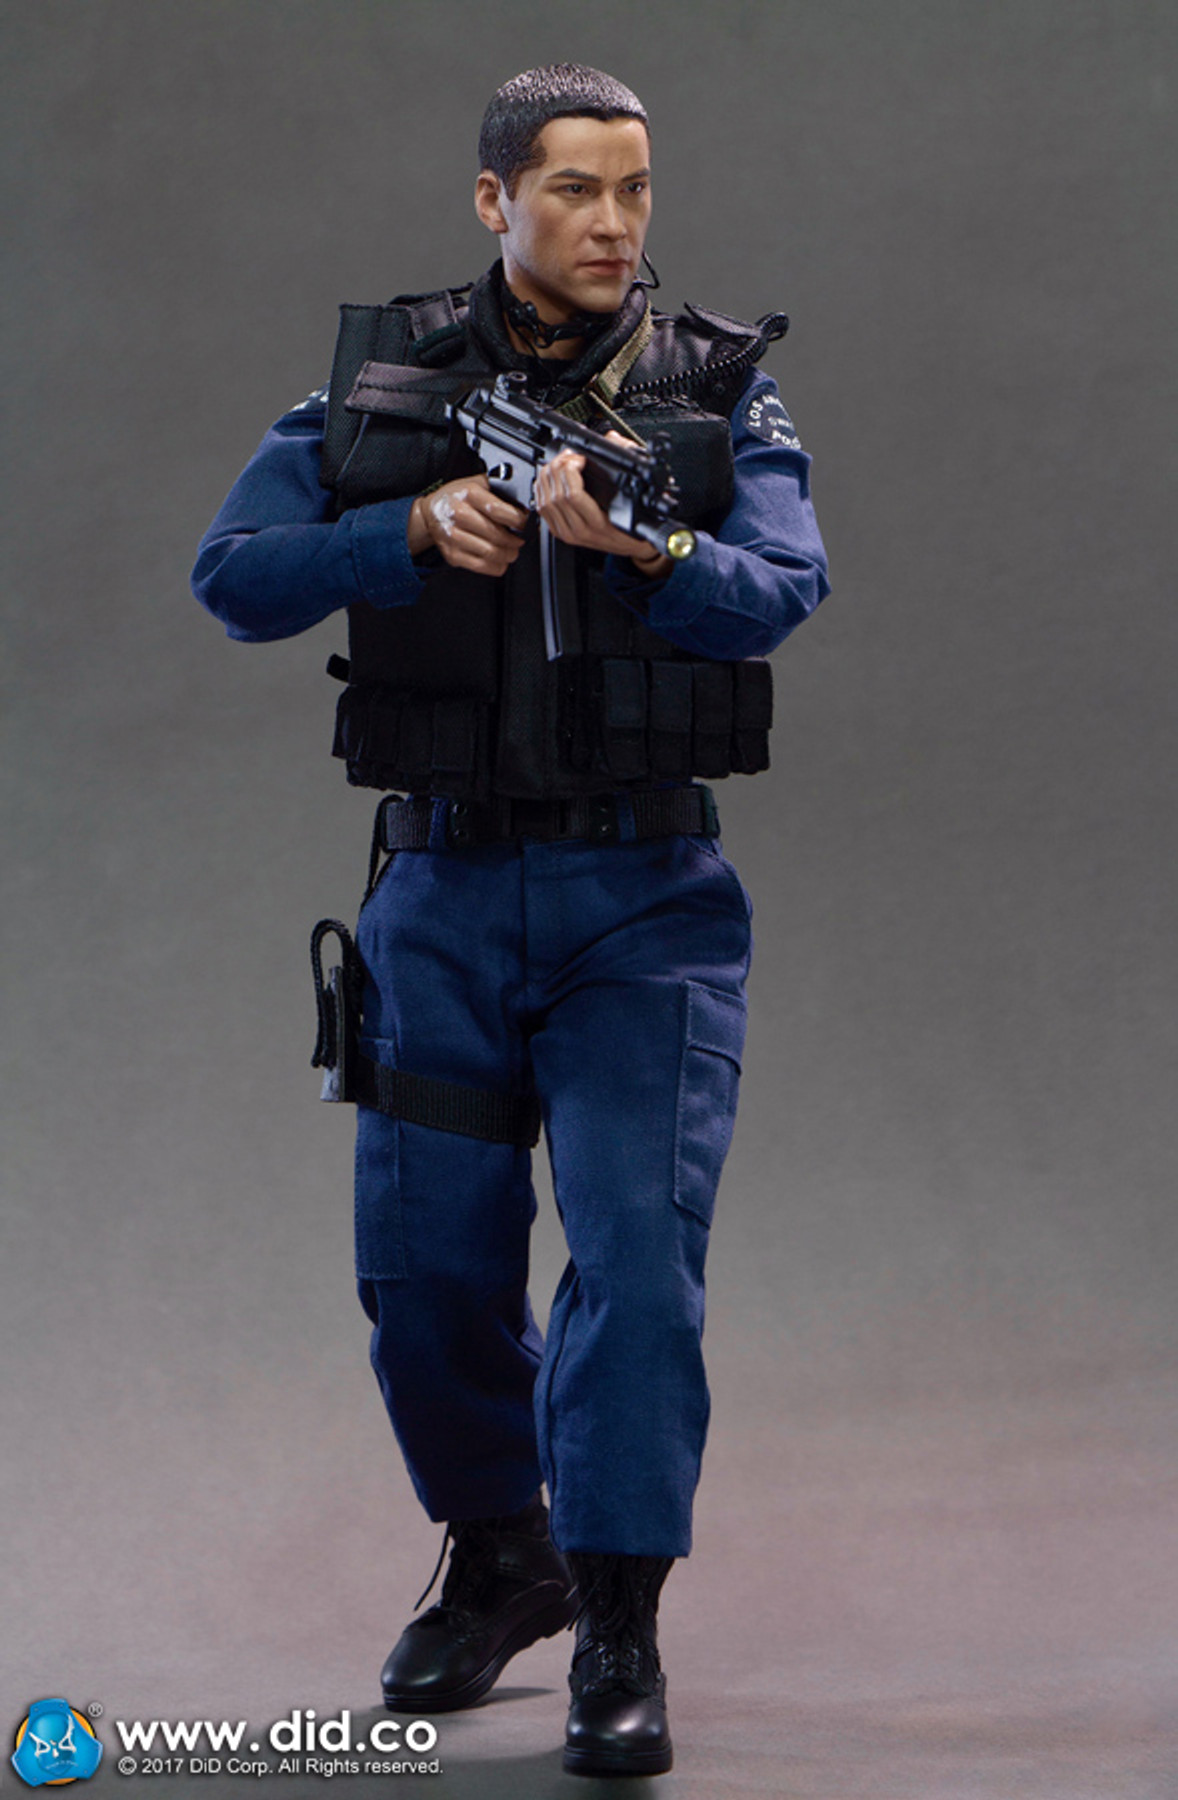 DID DRAGON IN DREAMS 1:6TH SCALE LAPD SWAT RADIO WITH EAR PIECE FROM KENNY